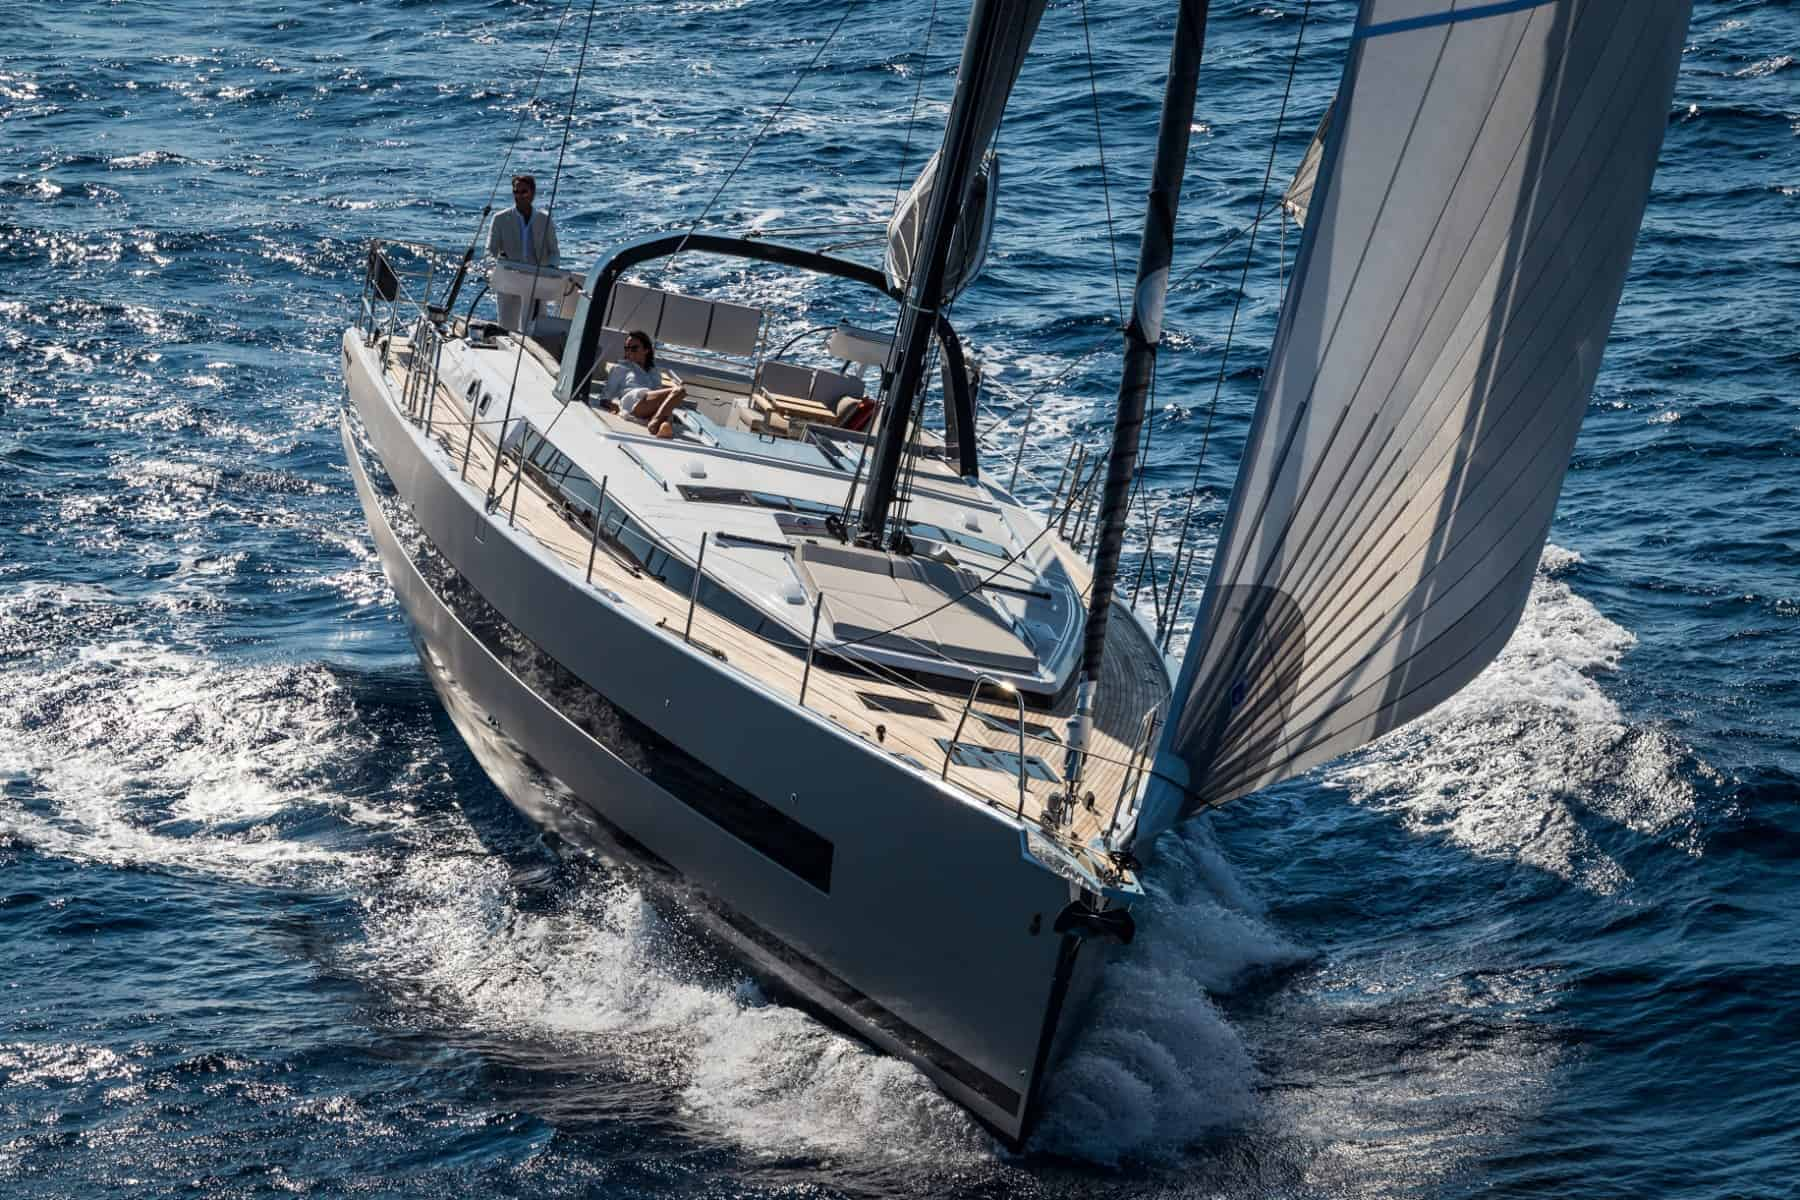 beneteau-oceanis-yacht-62 heads on yacht-match